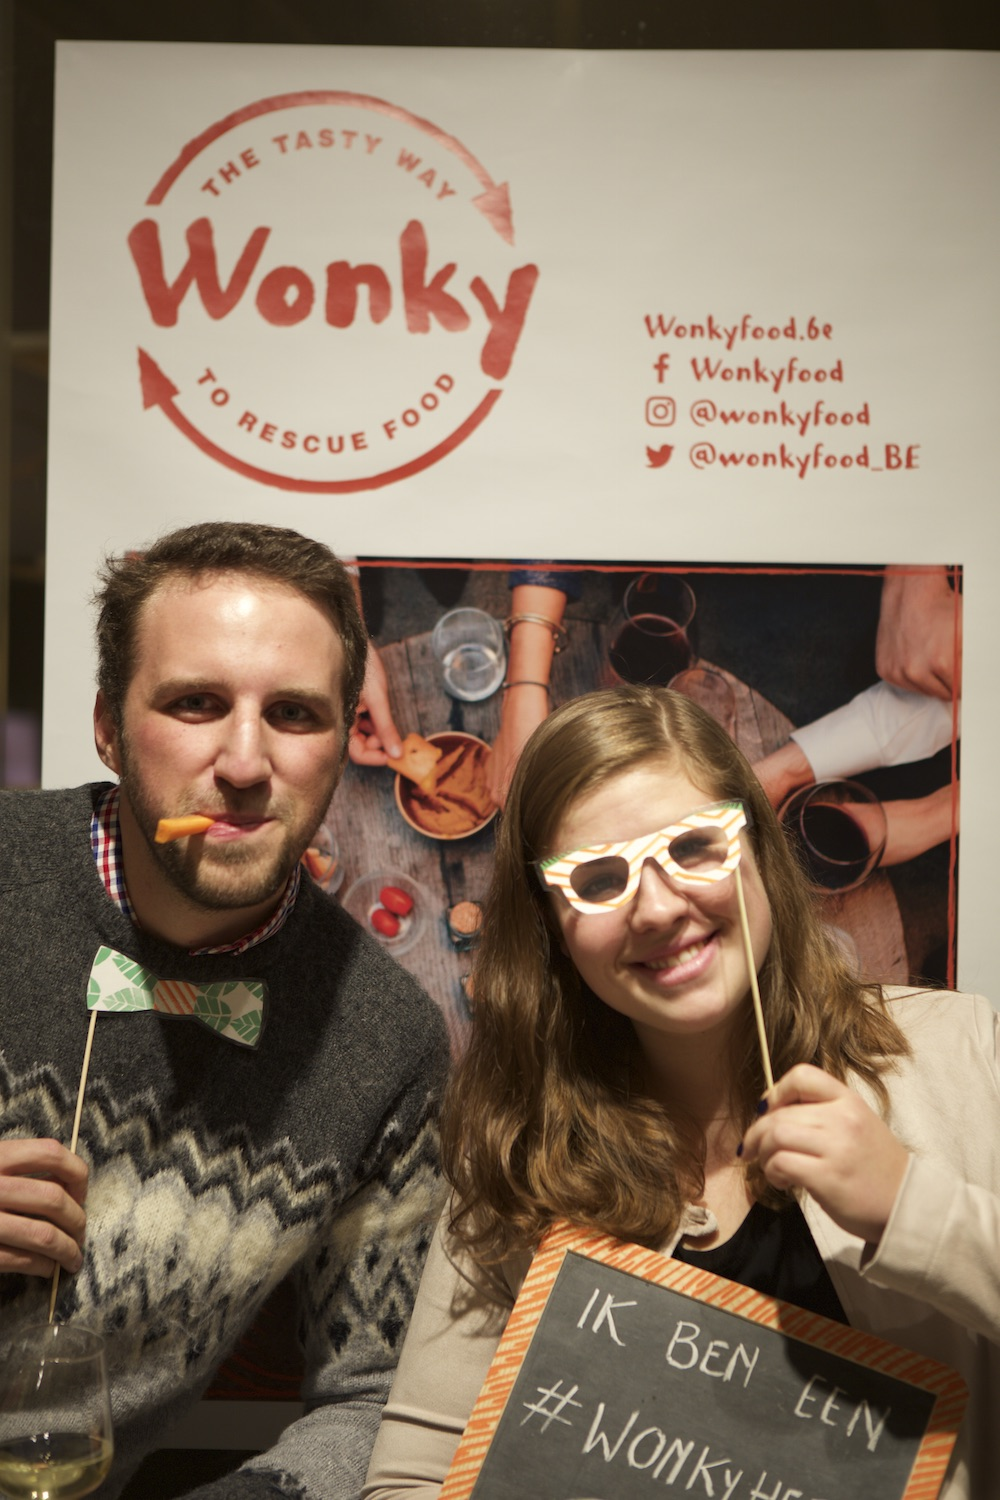 The Wonky Launch party